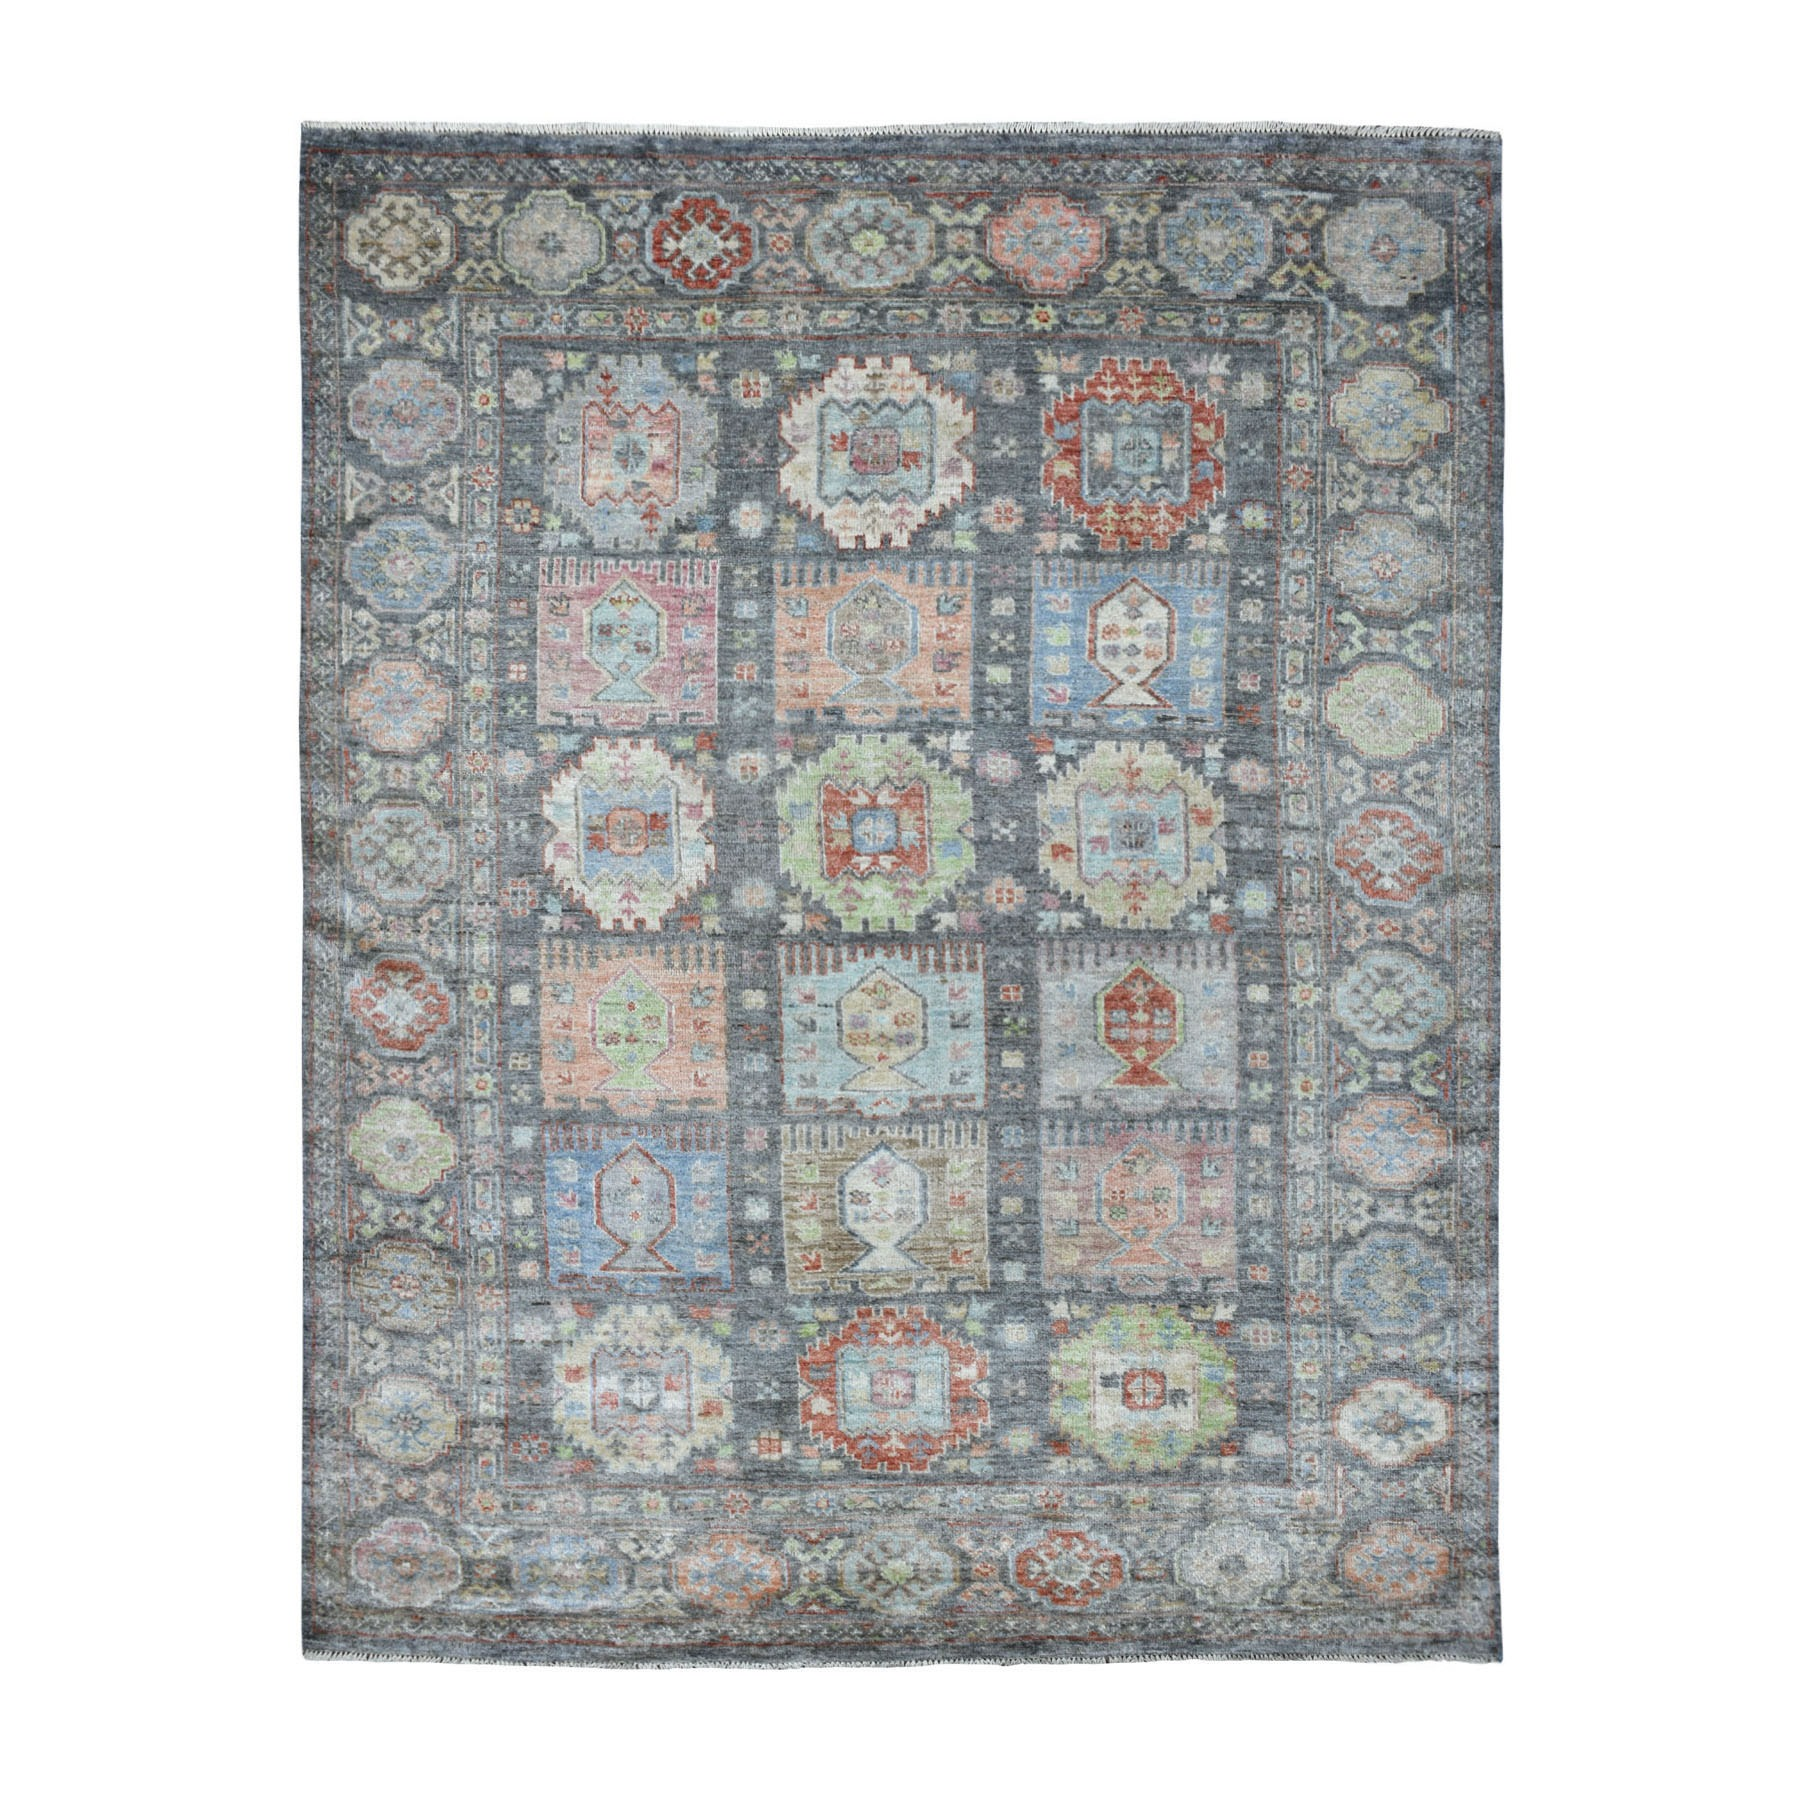 8'X10' Charcoal Gray Garden Design Soft Wool Hand Knotted Oriental Rug moaede8a